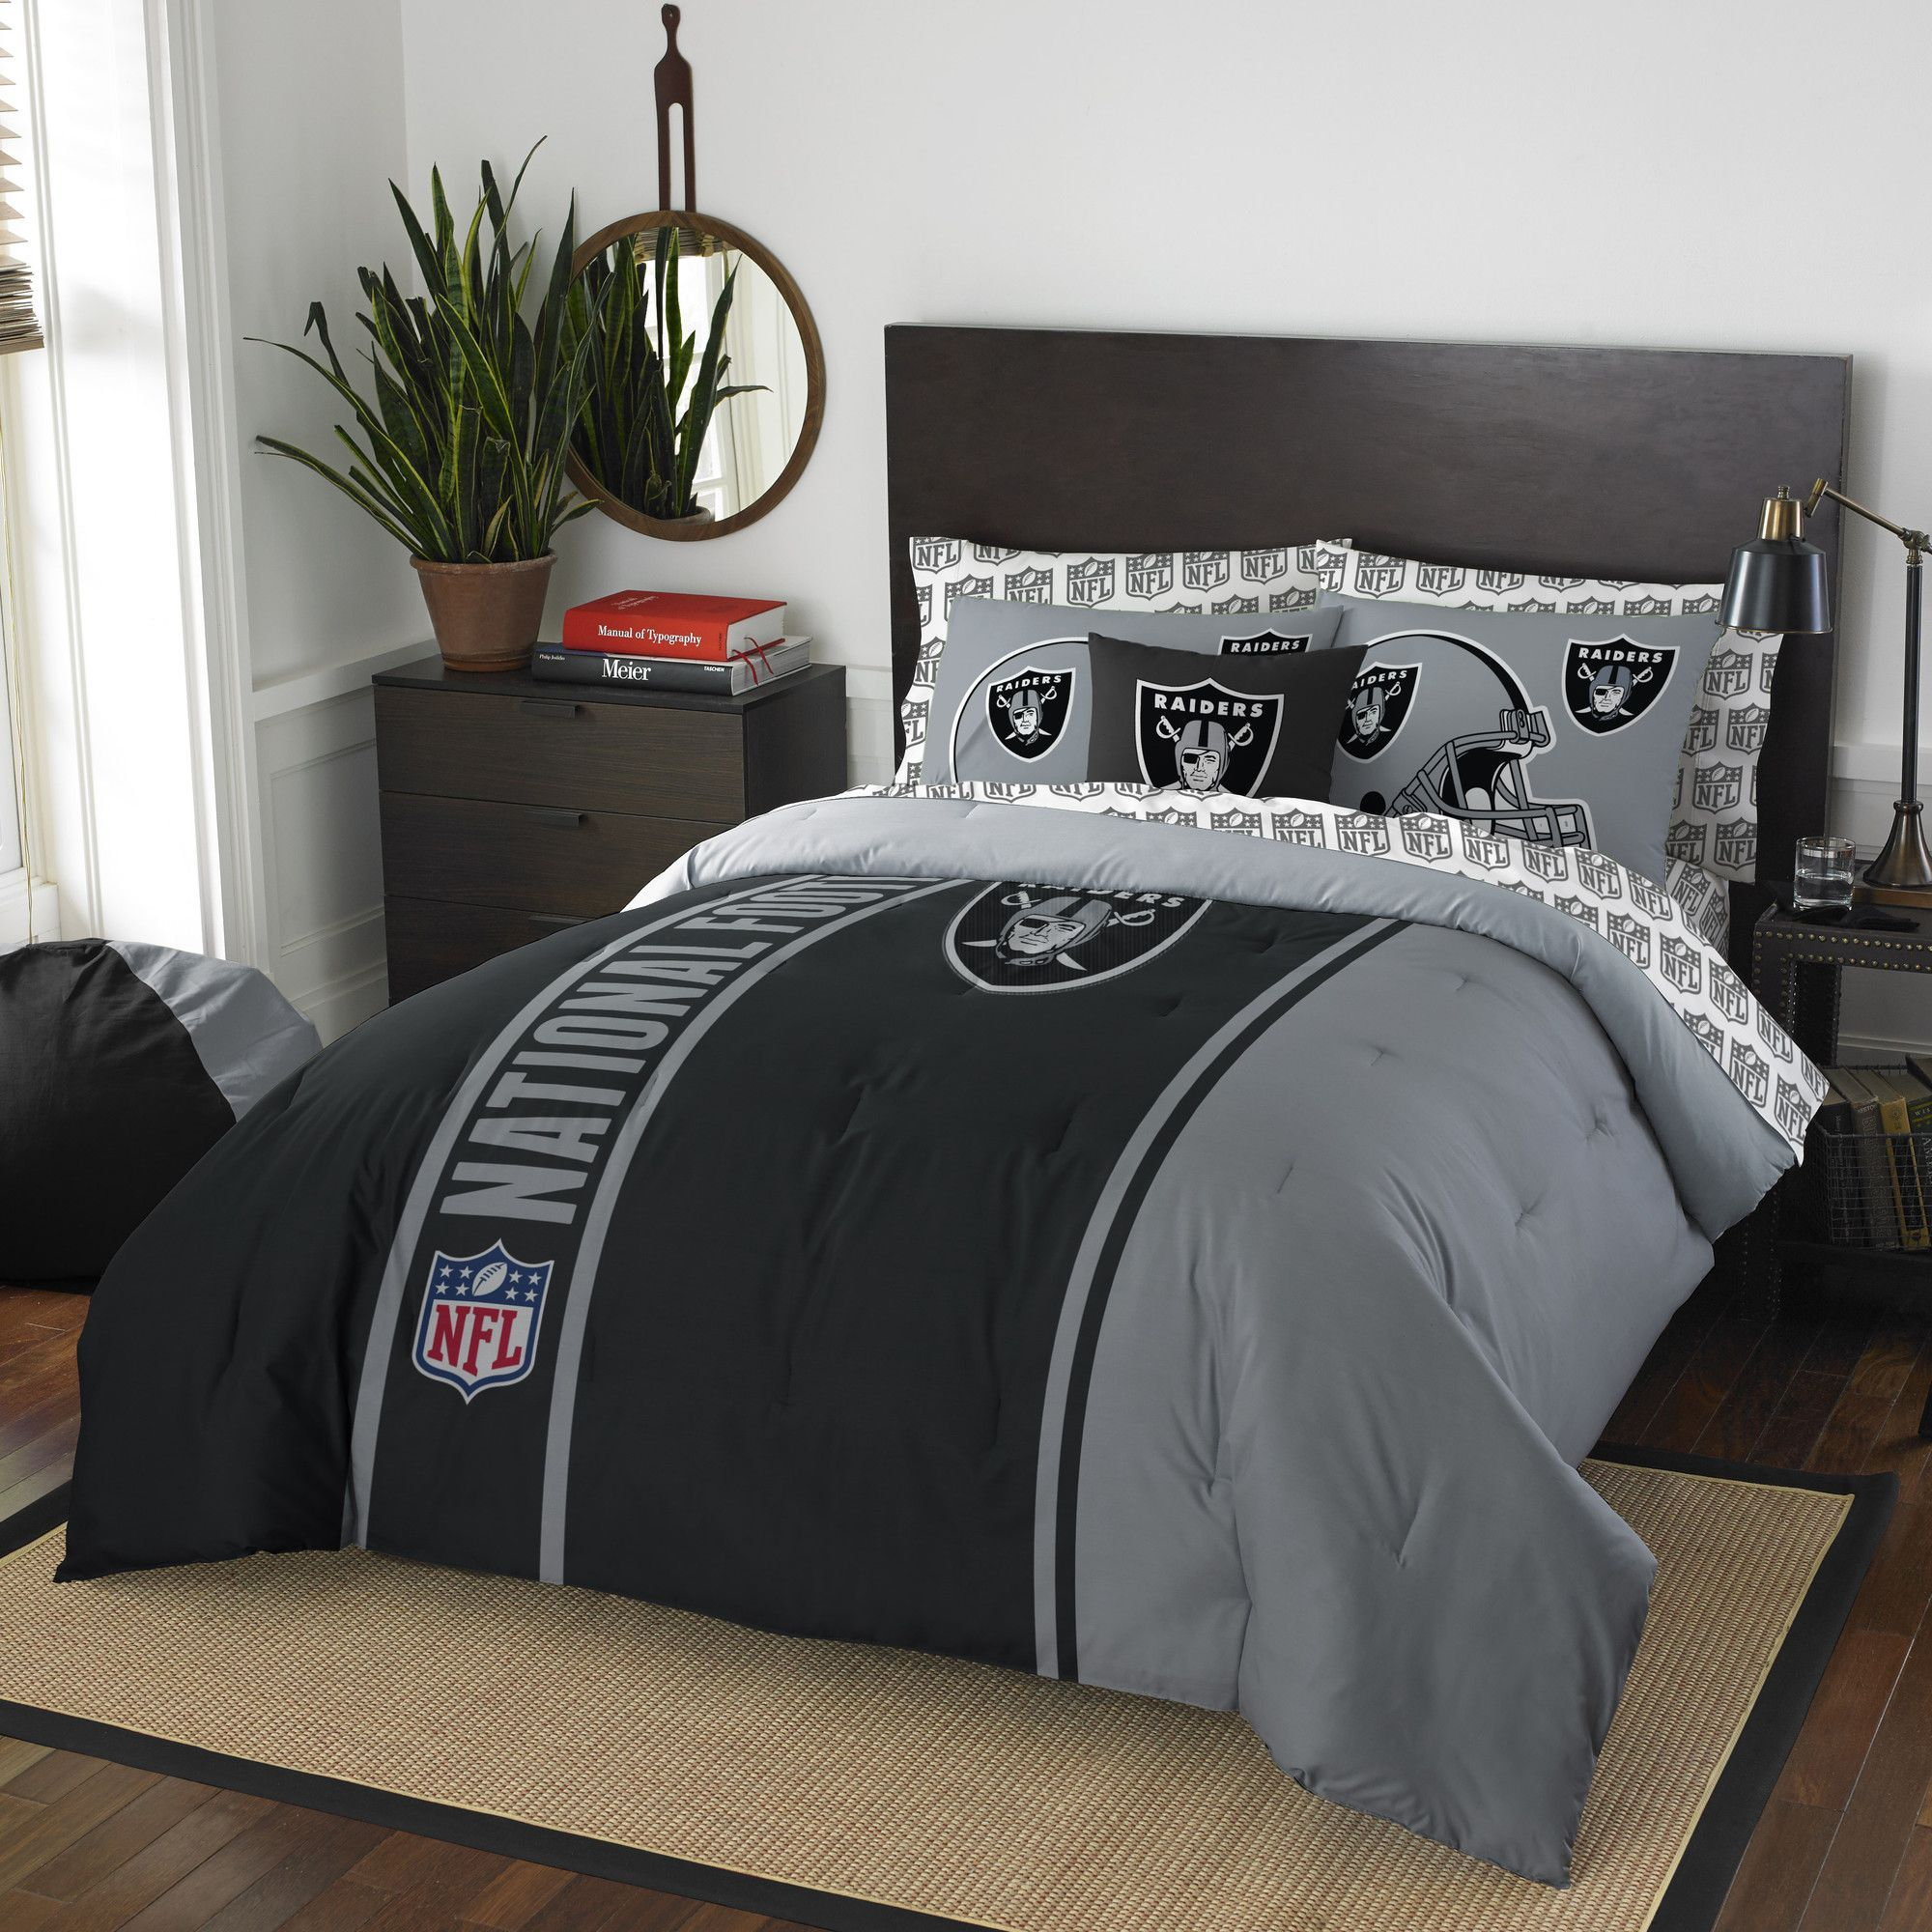 Nfl Raiders Comforter Set Full Comforter Sets Full Bedding Sets